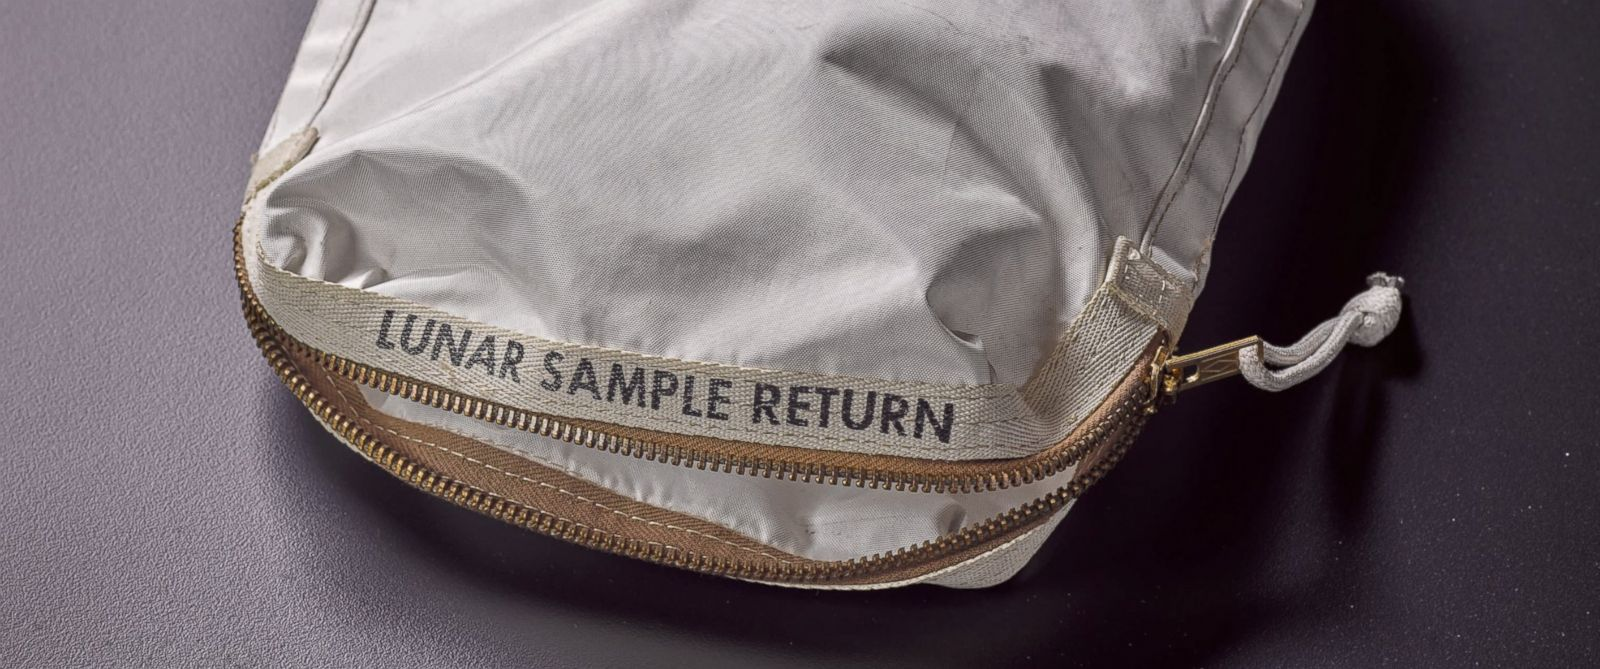 Bag containing moon dust from Apollo 11 expected to sell for millions at auction: https://t.co/jRSvTF7m9f https://t.co/6bs7vuQi7l